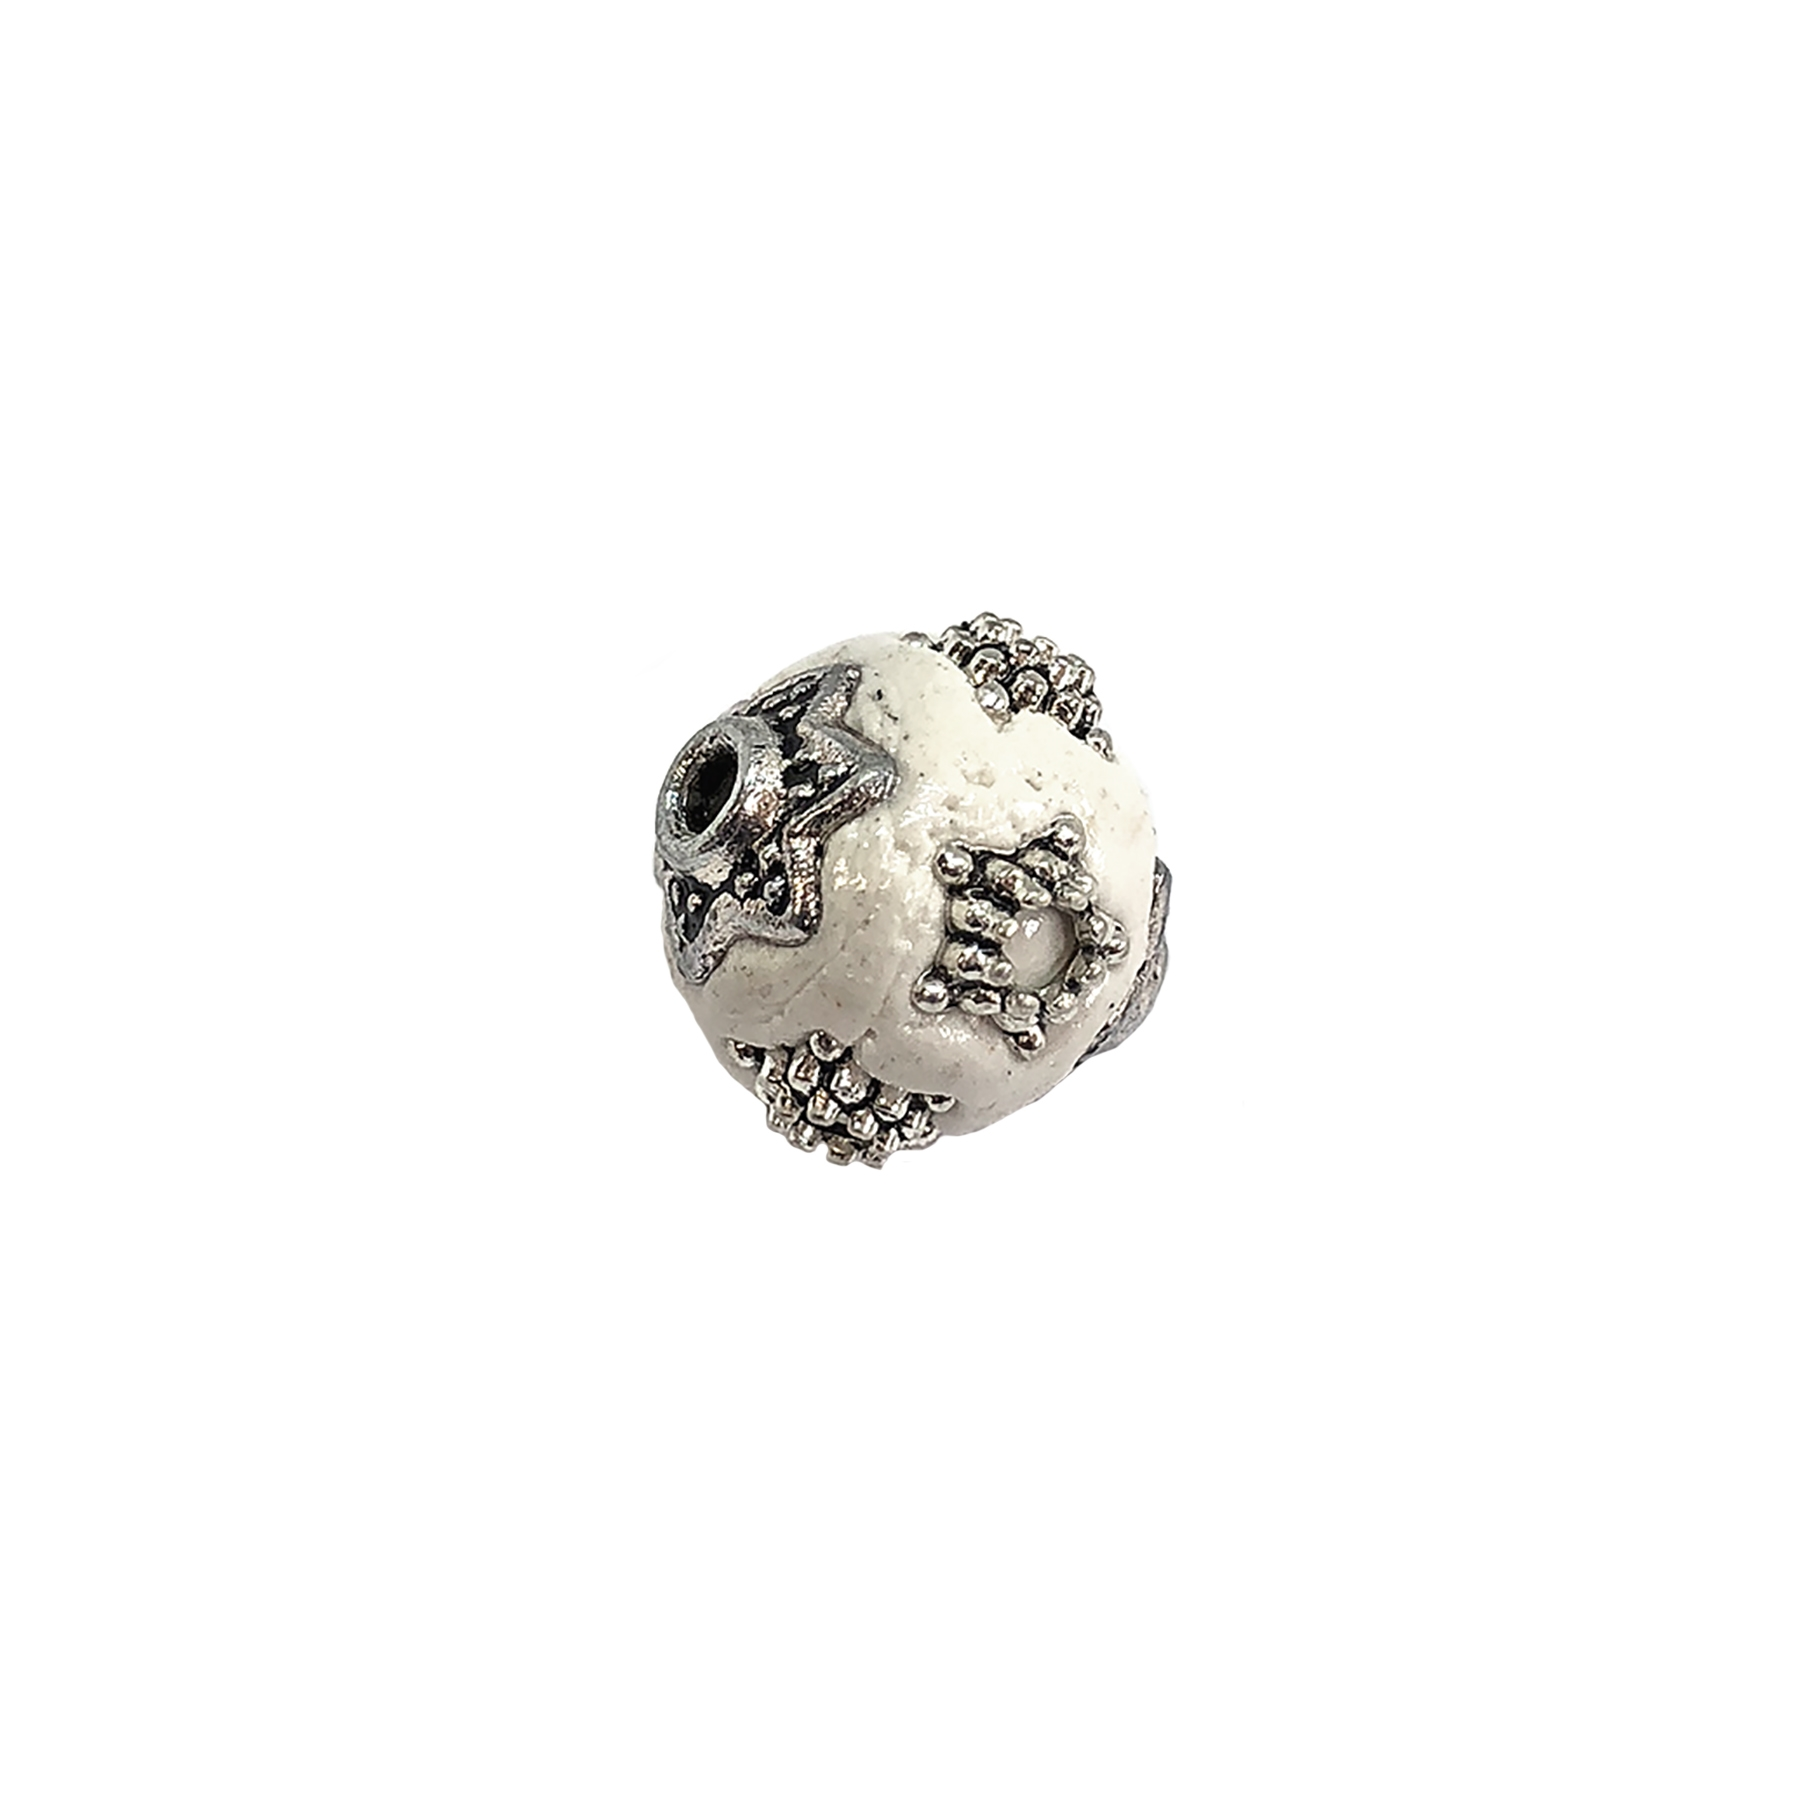 handmade Indonesian beads, white/silver, 11mm, beads, white beads, silver star beads, plastic beads, resin beads, beading supplies, jewelry making, jewelry supplies, vintage supplies, white bead, star accenting beads, 09207